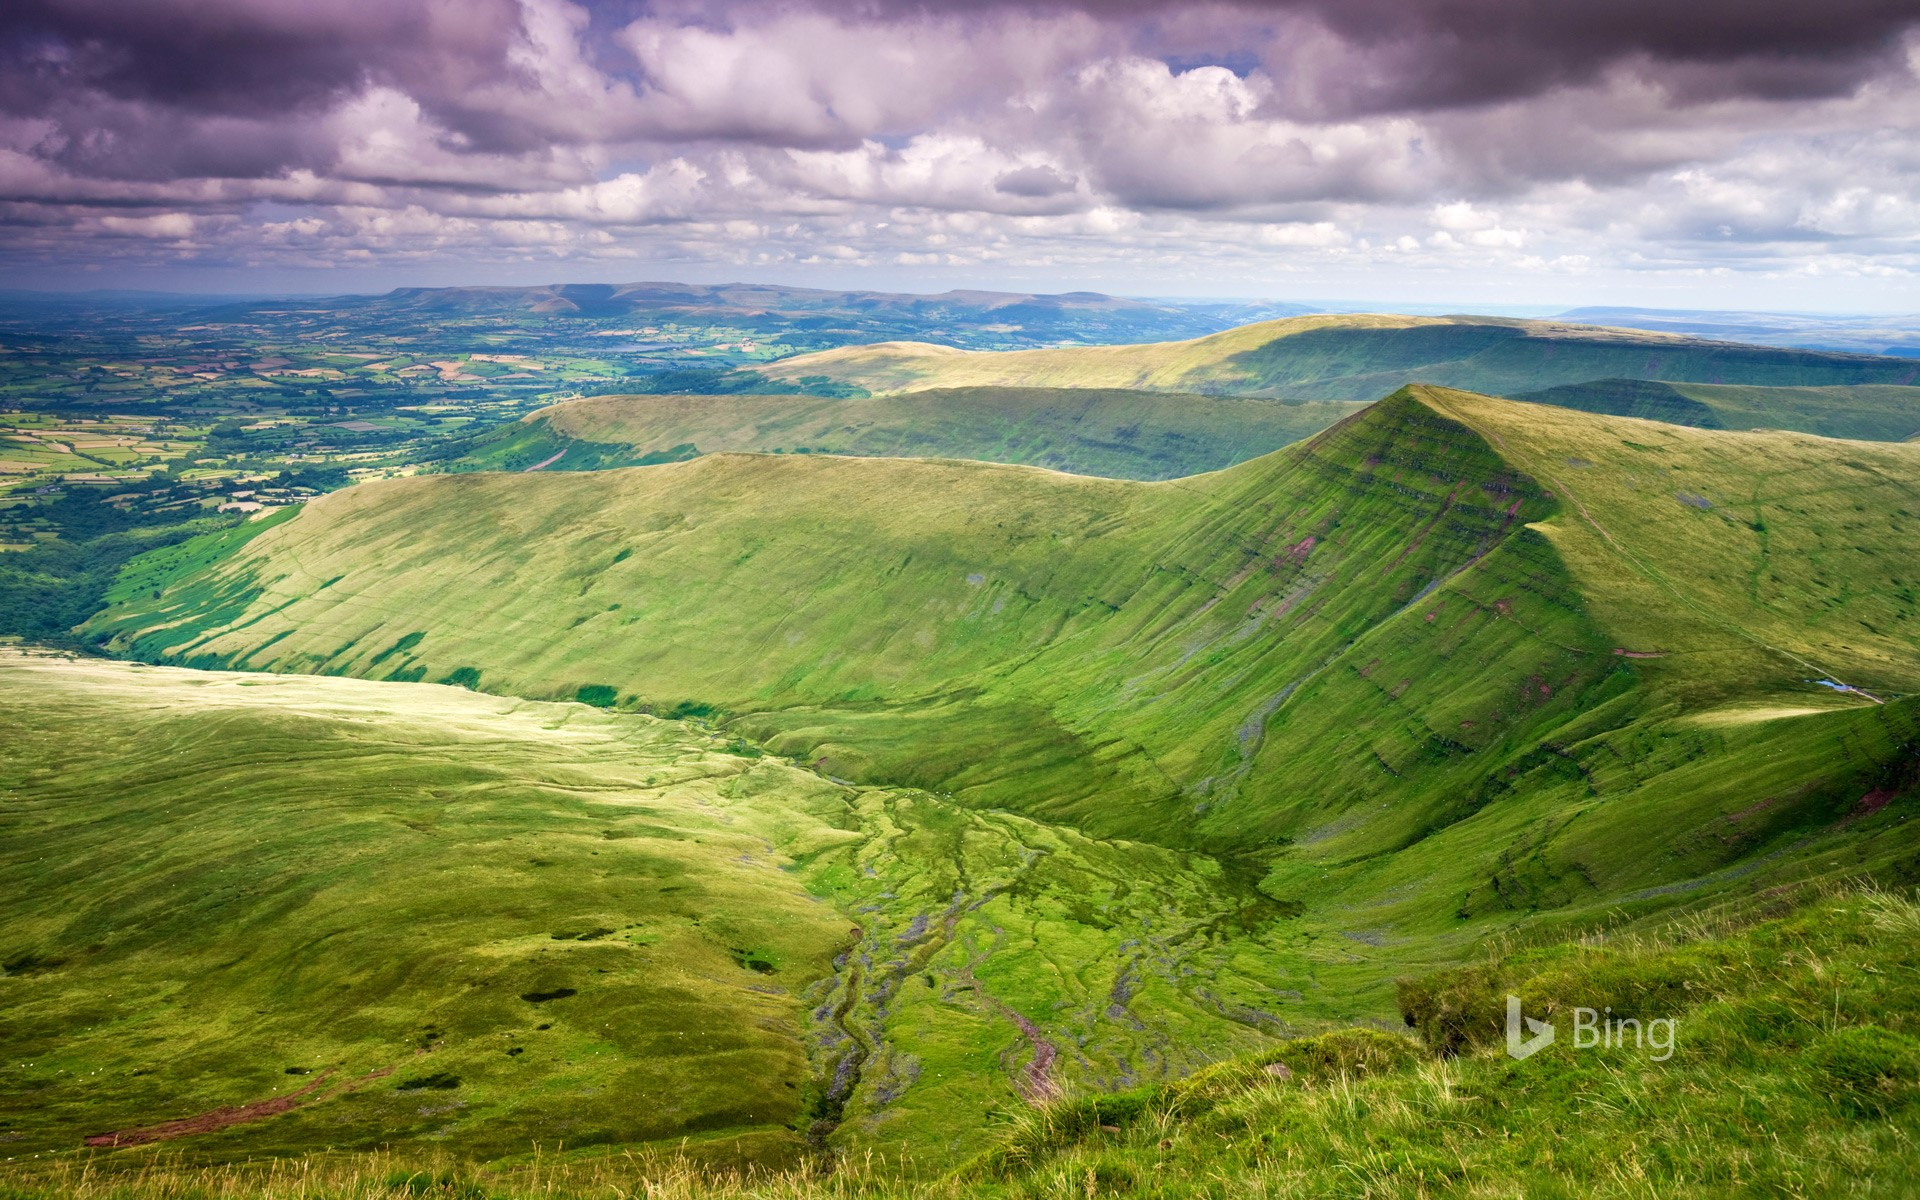 Cribyn viewed from Pen y Fan, Brecon Beacons National Park, Powys